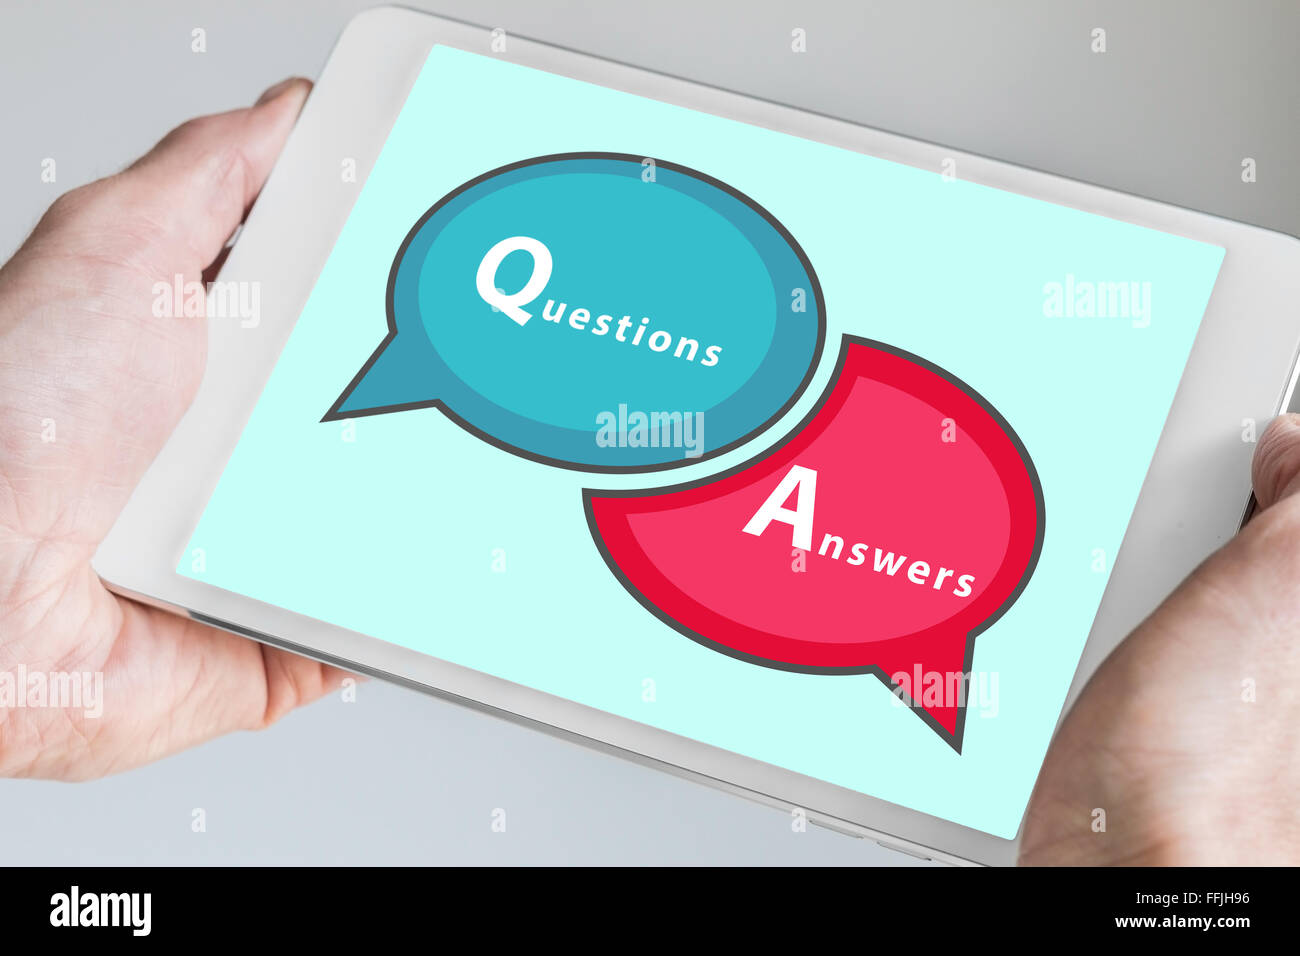 Questions and Answers Q&A session concept with hands holding modern tablet or smartphone to be used as slide - Stock Image